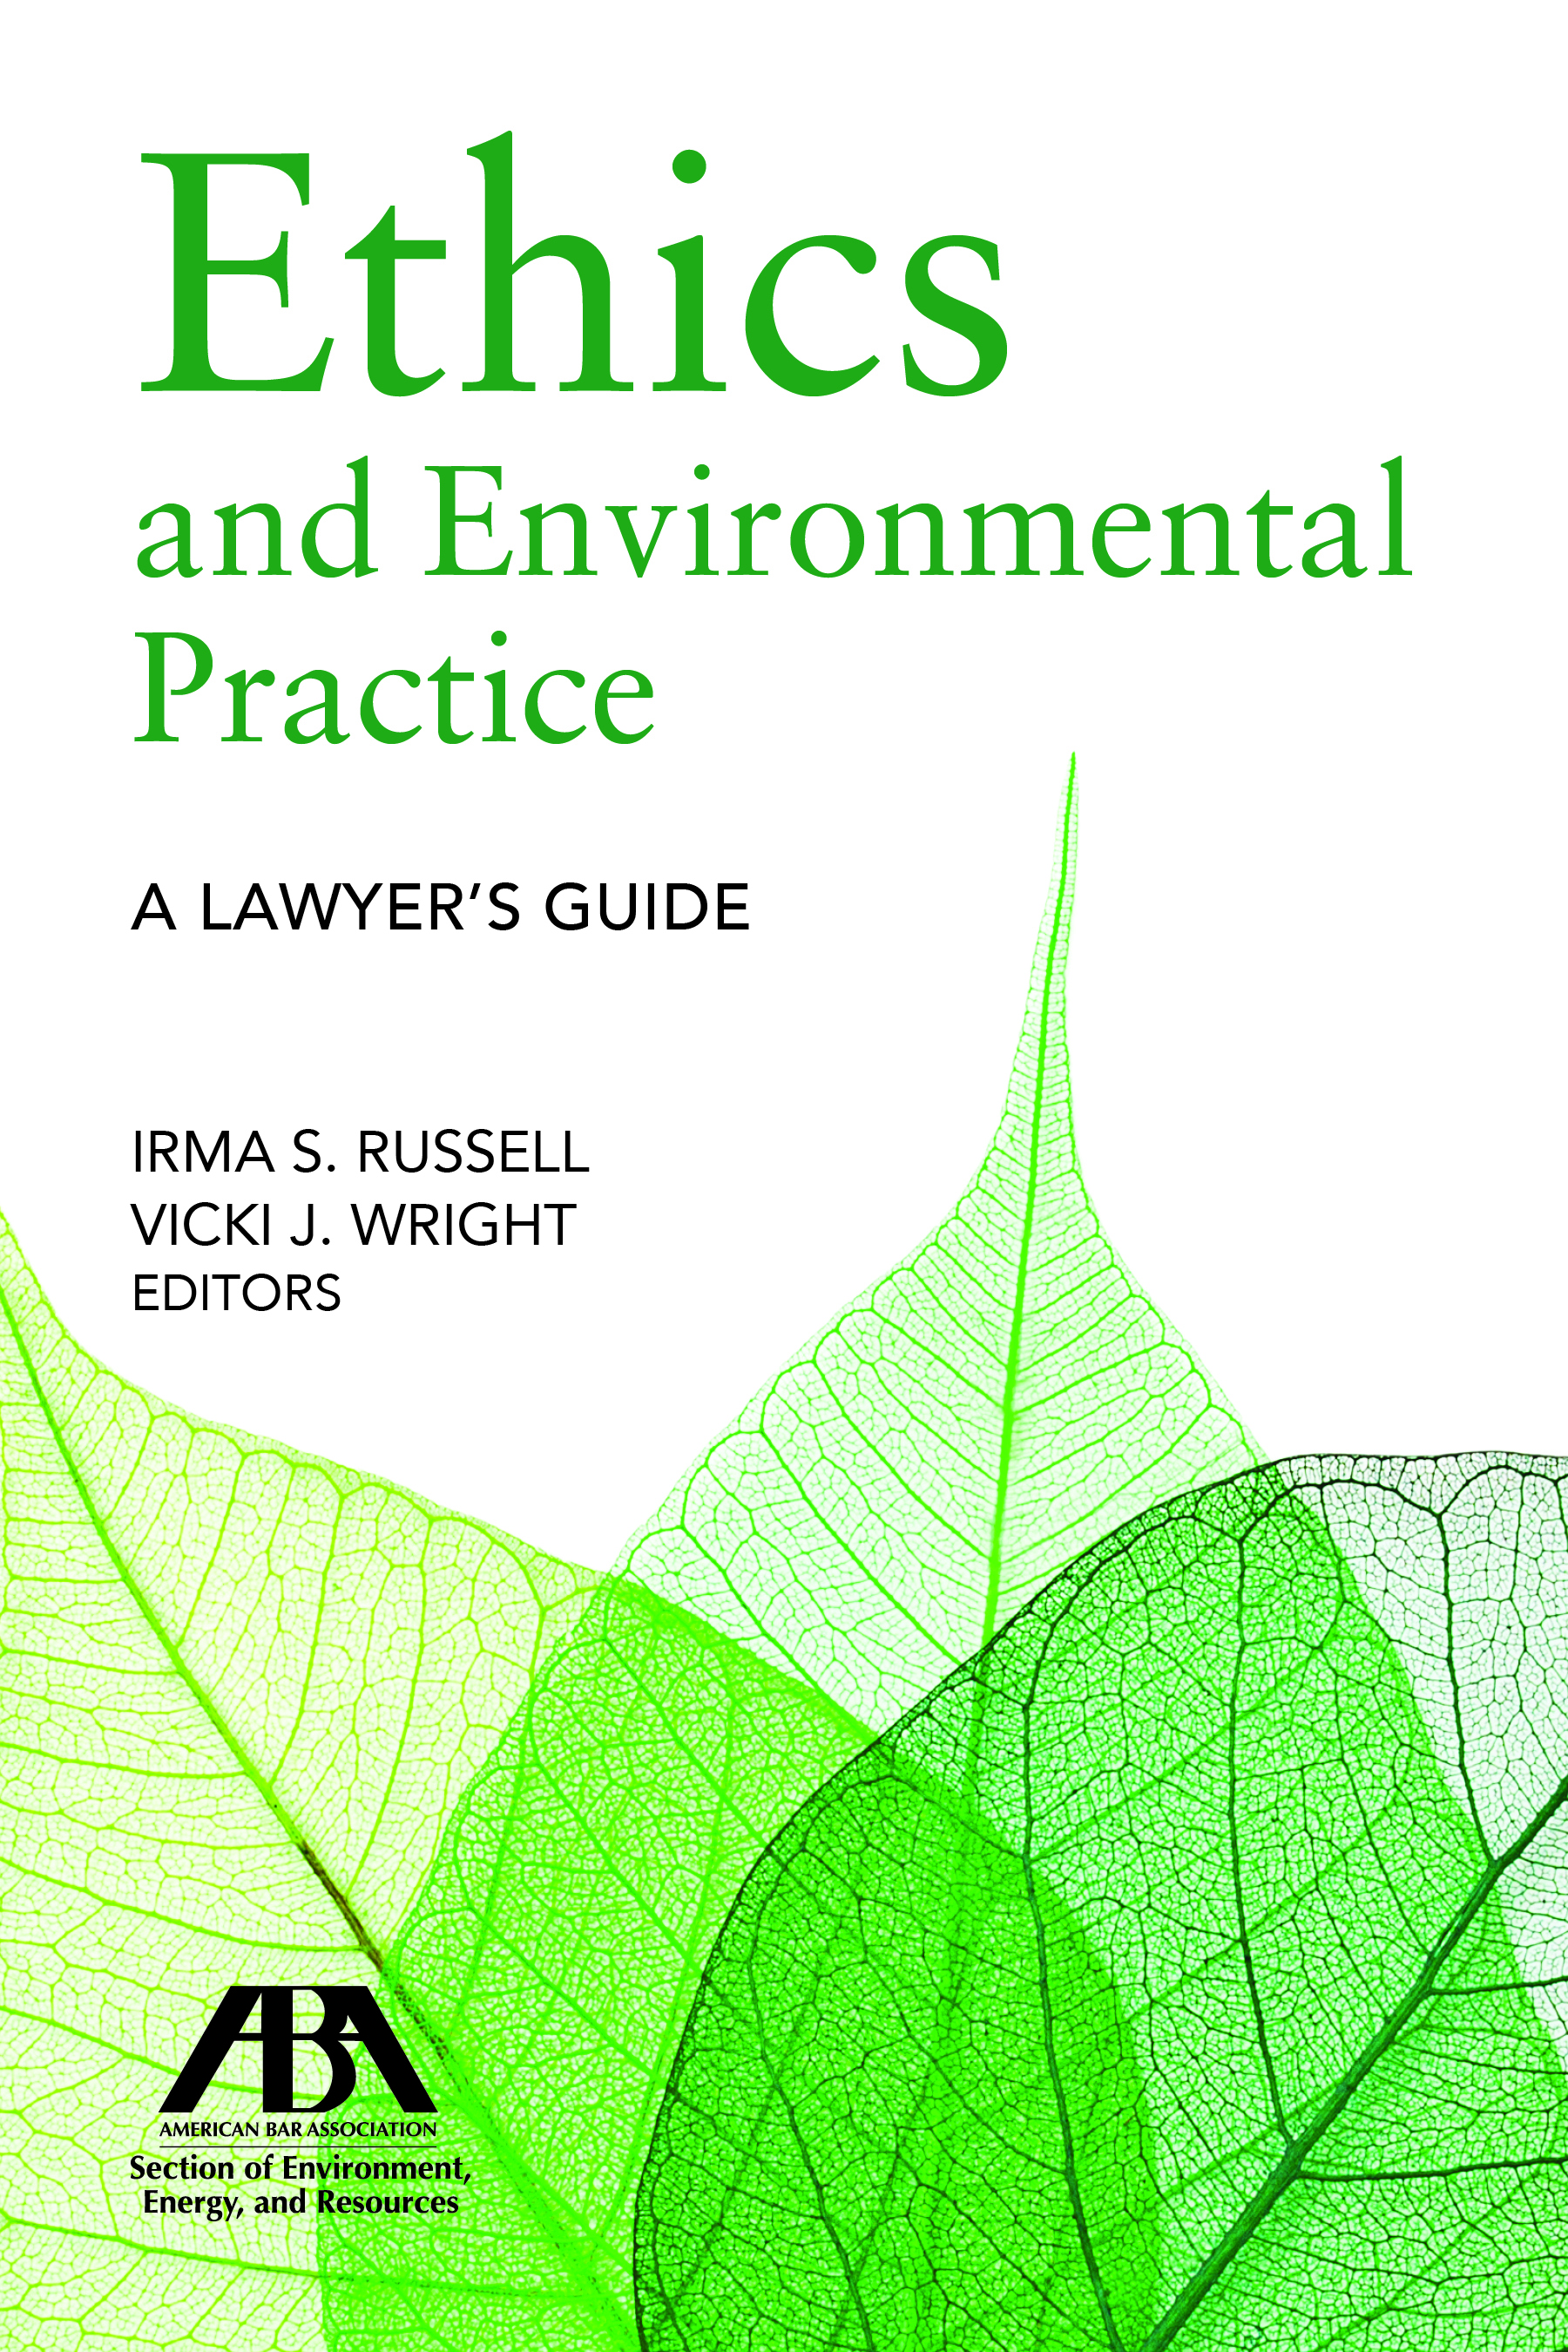 Ethics and Environmental Practice: A Lawyer's Guide